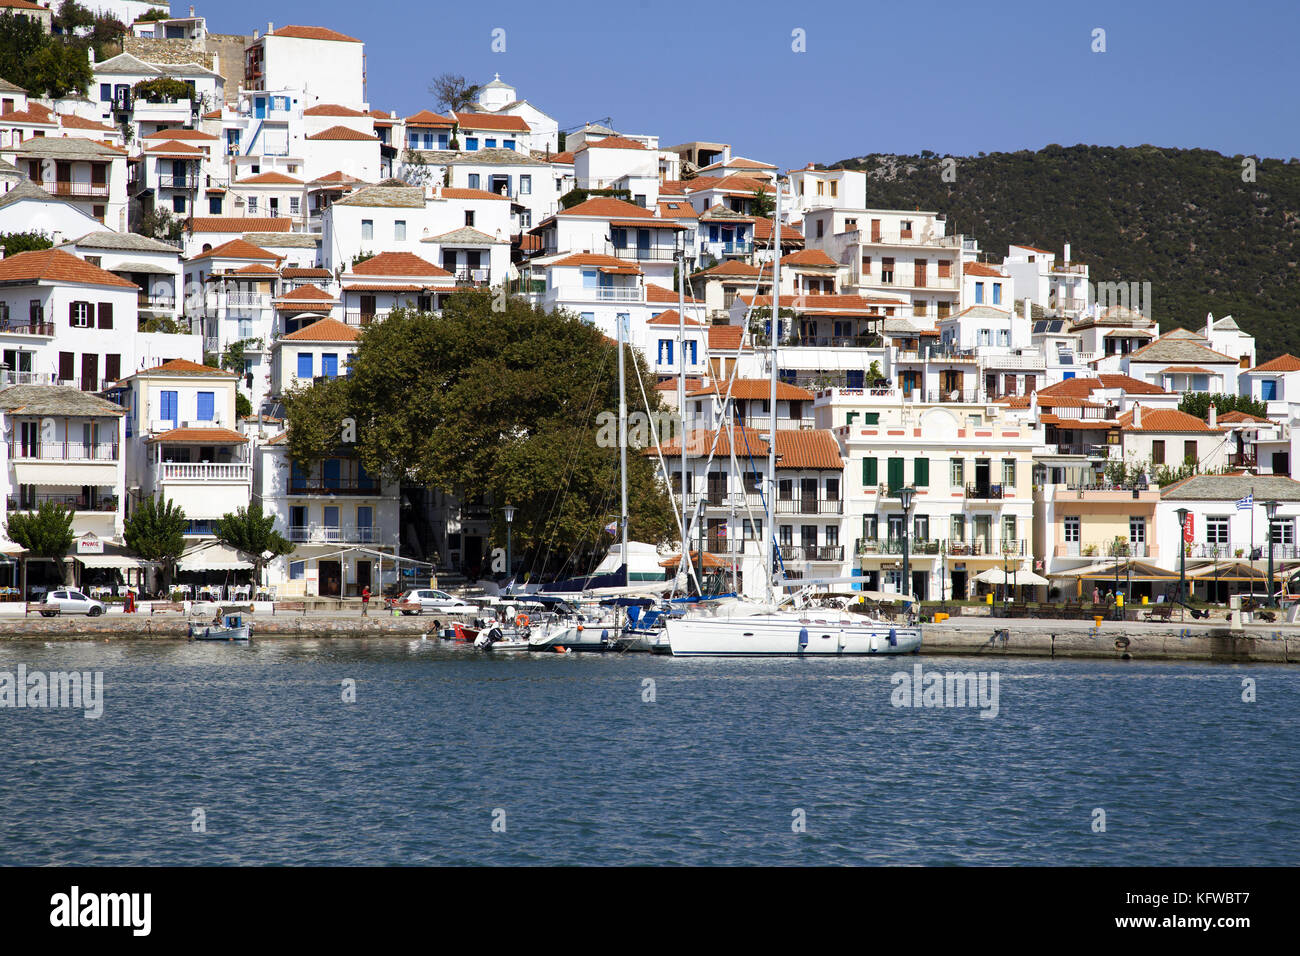 Skopelos town viewed from the shore, Jazz café underneath enormous old plane tree, Sporades, Greece - Stock Image